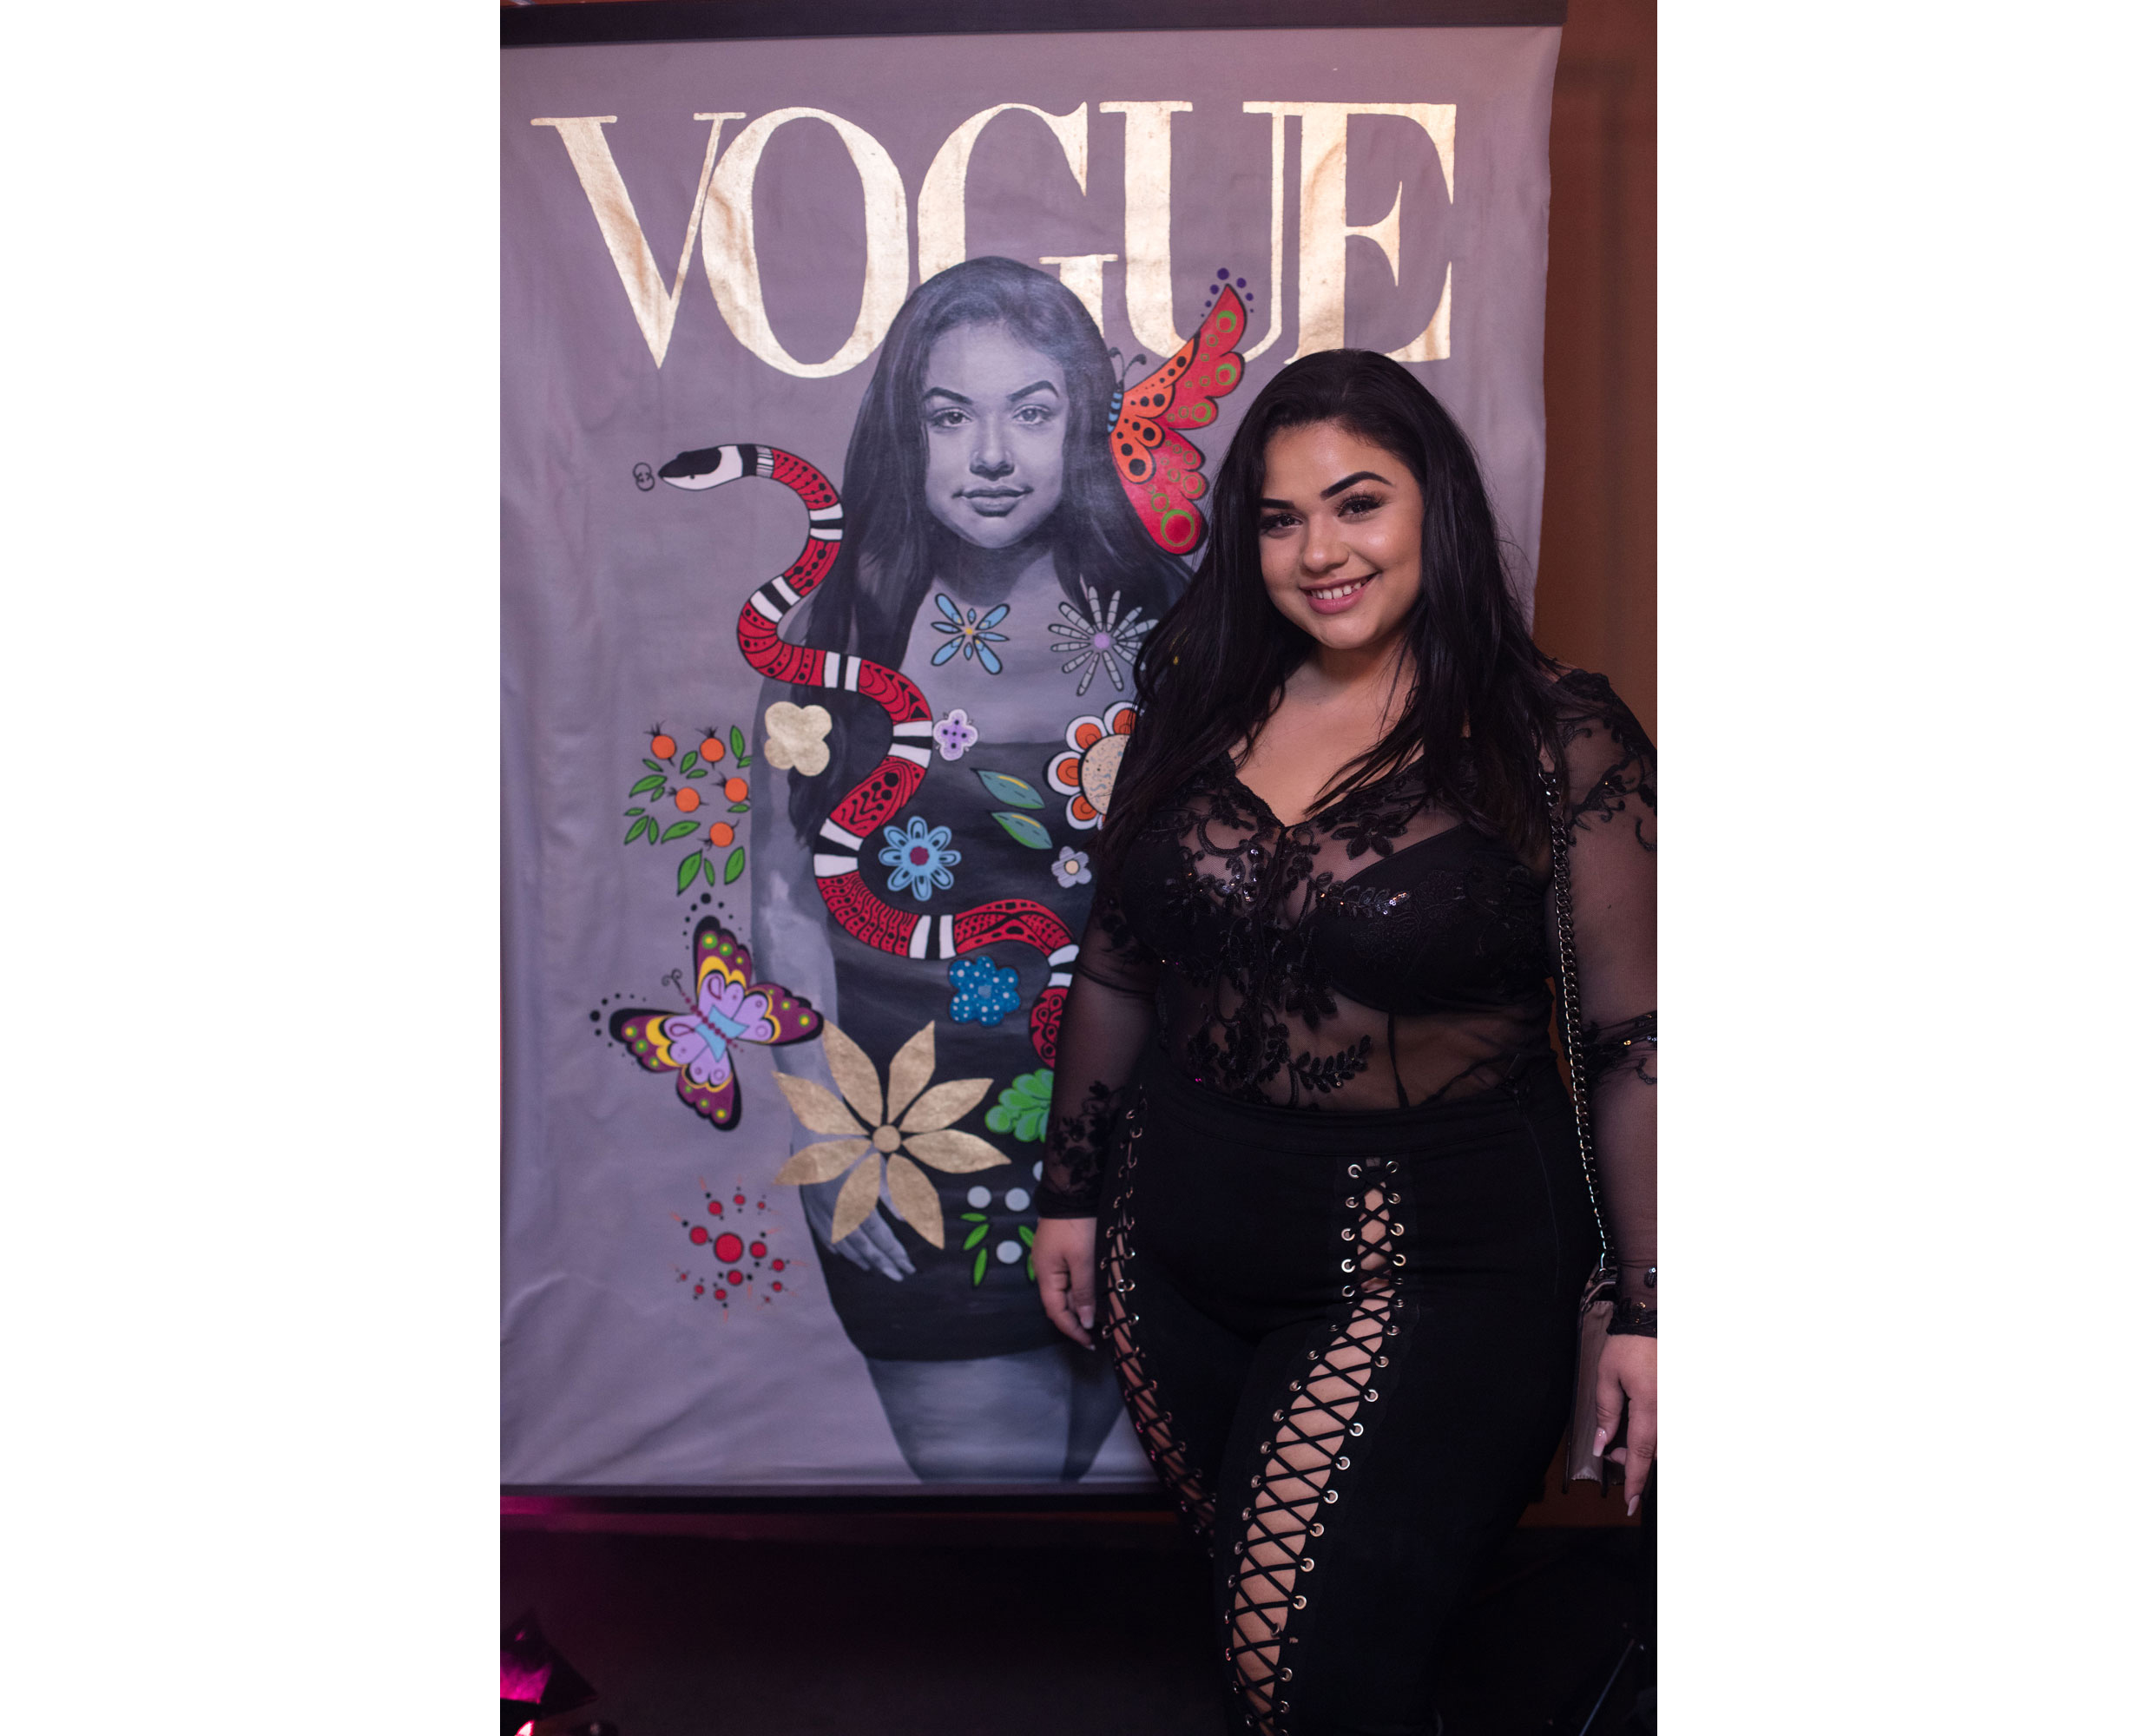 Diana Sirokai poses next to a painting depicting her on the cover of Vogue